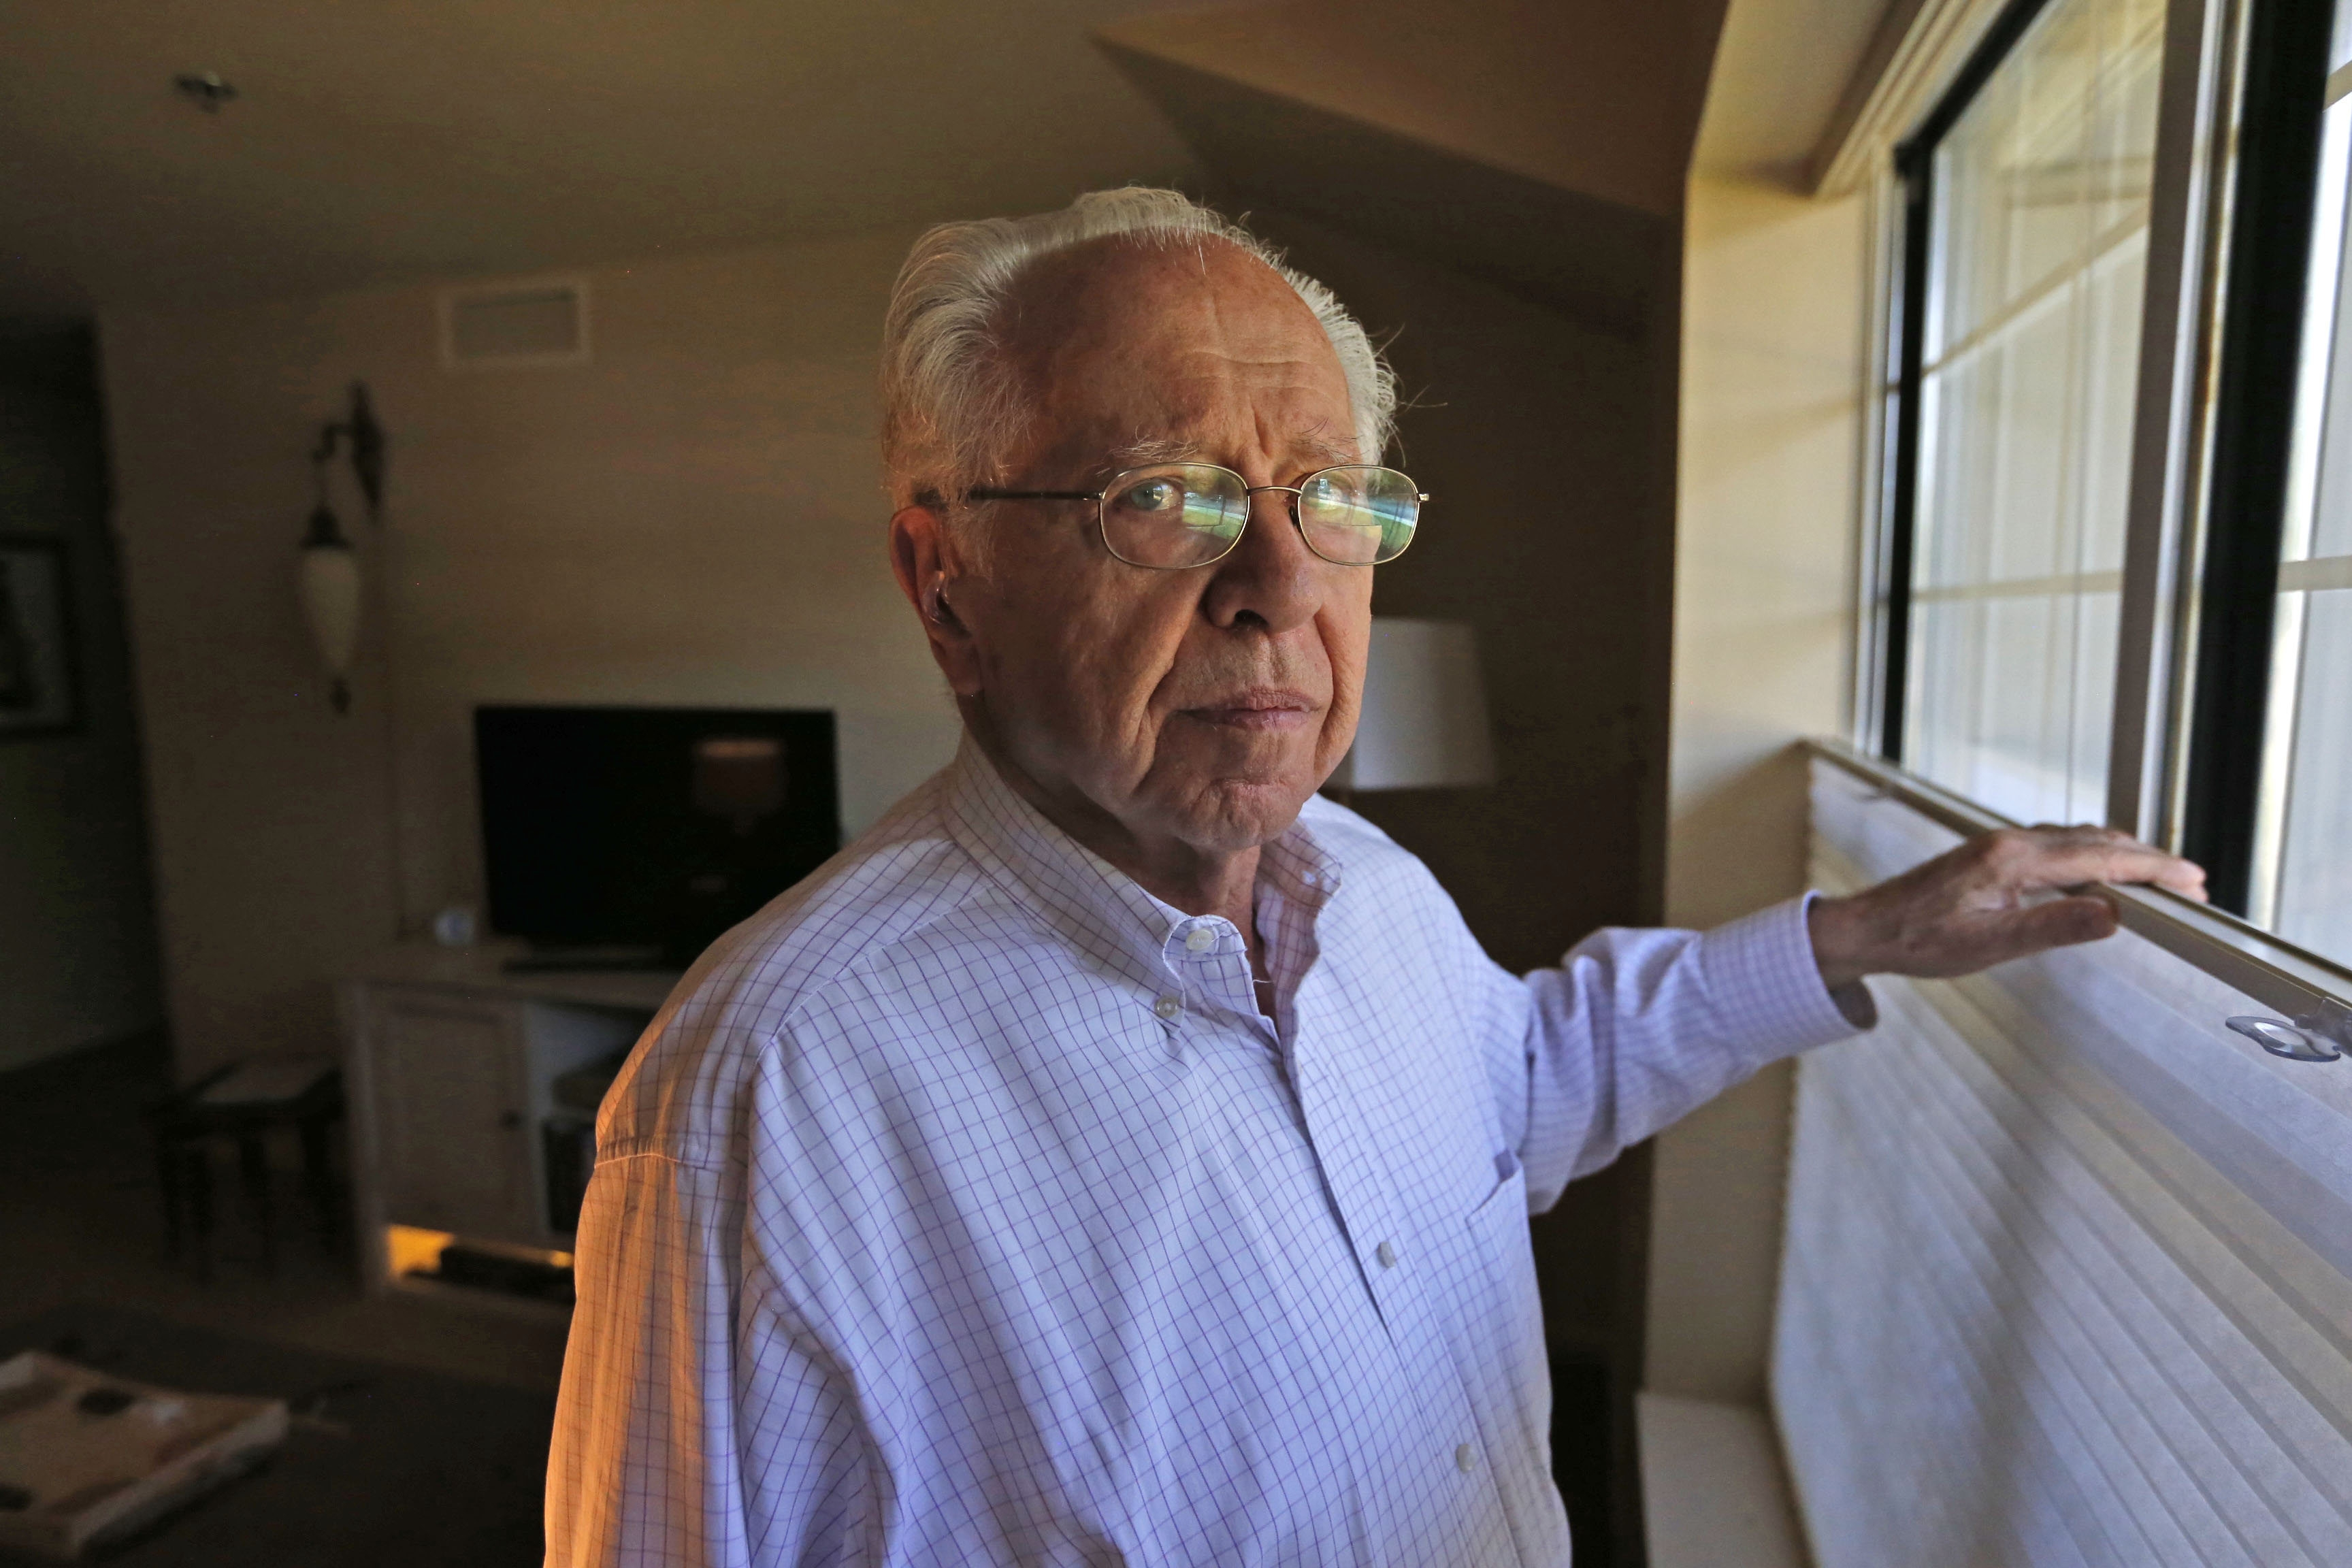 Stephan H. Lewy, in his apartment in Amherst, now has the time to reflect on the horrors that his family and thousands of other Jews suffered under the Nazis' oppression during the Holocaust. (Robert Kirkham/Buffalo News)